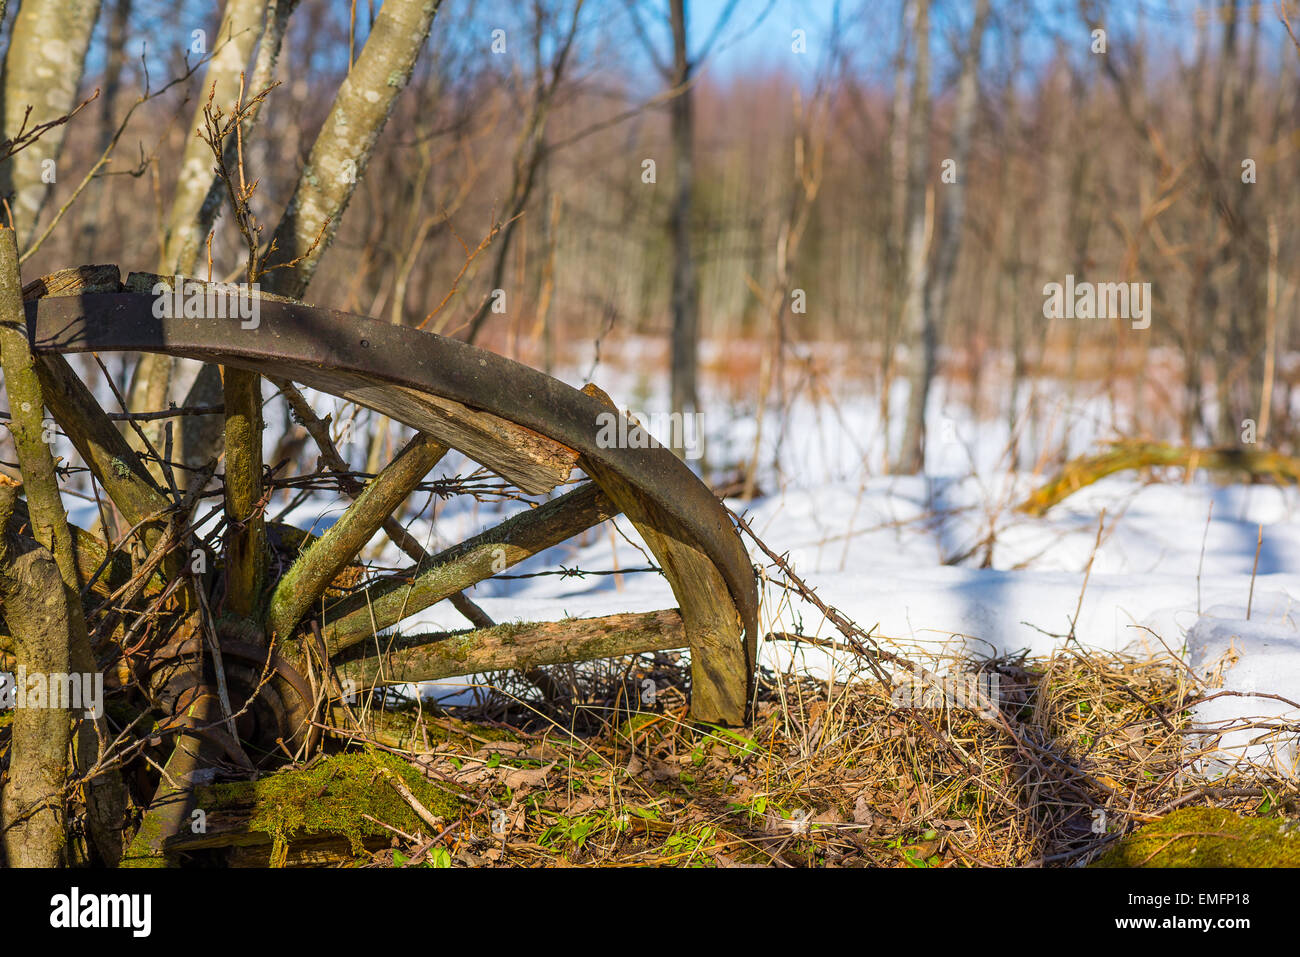 Old and broken cartwheel in Finnish countryside - Stock Image